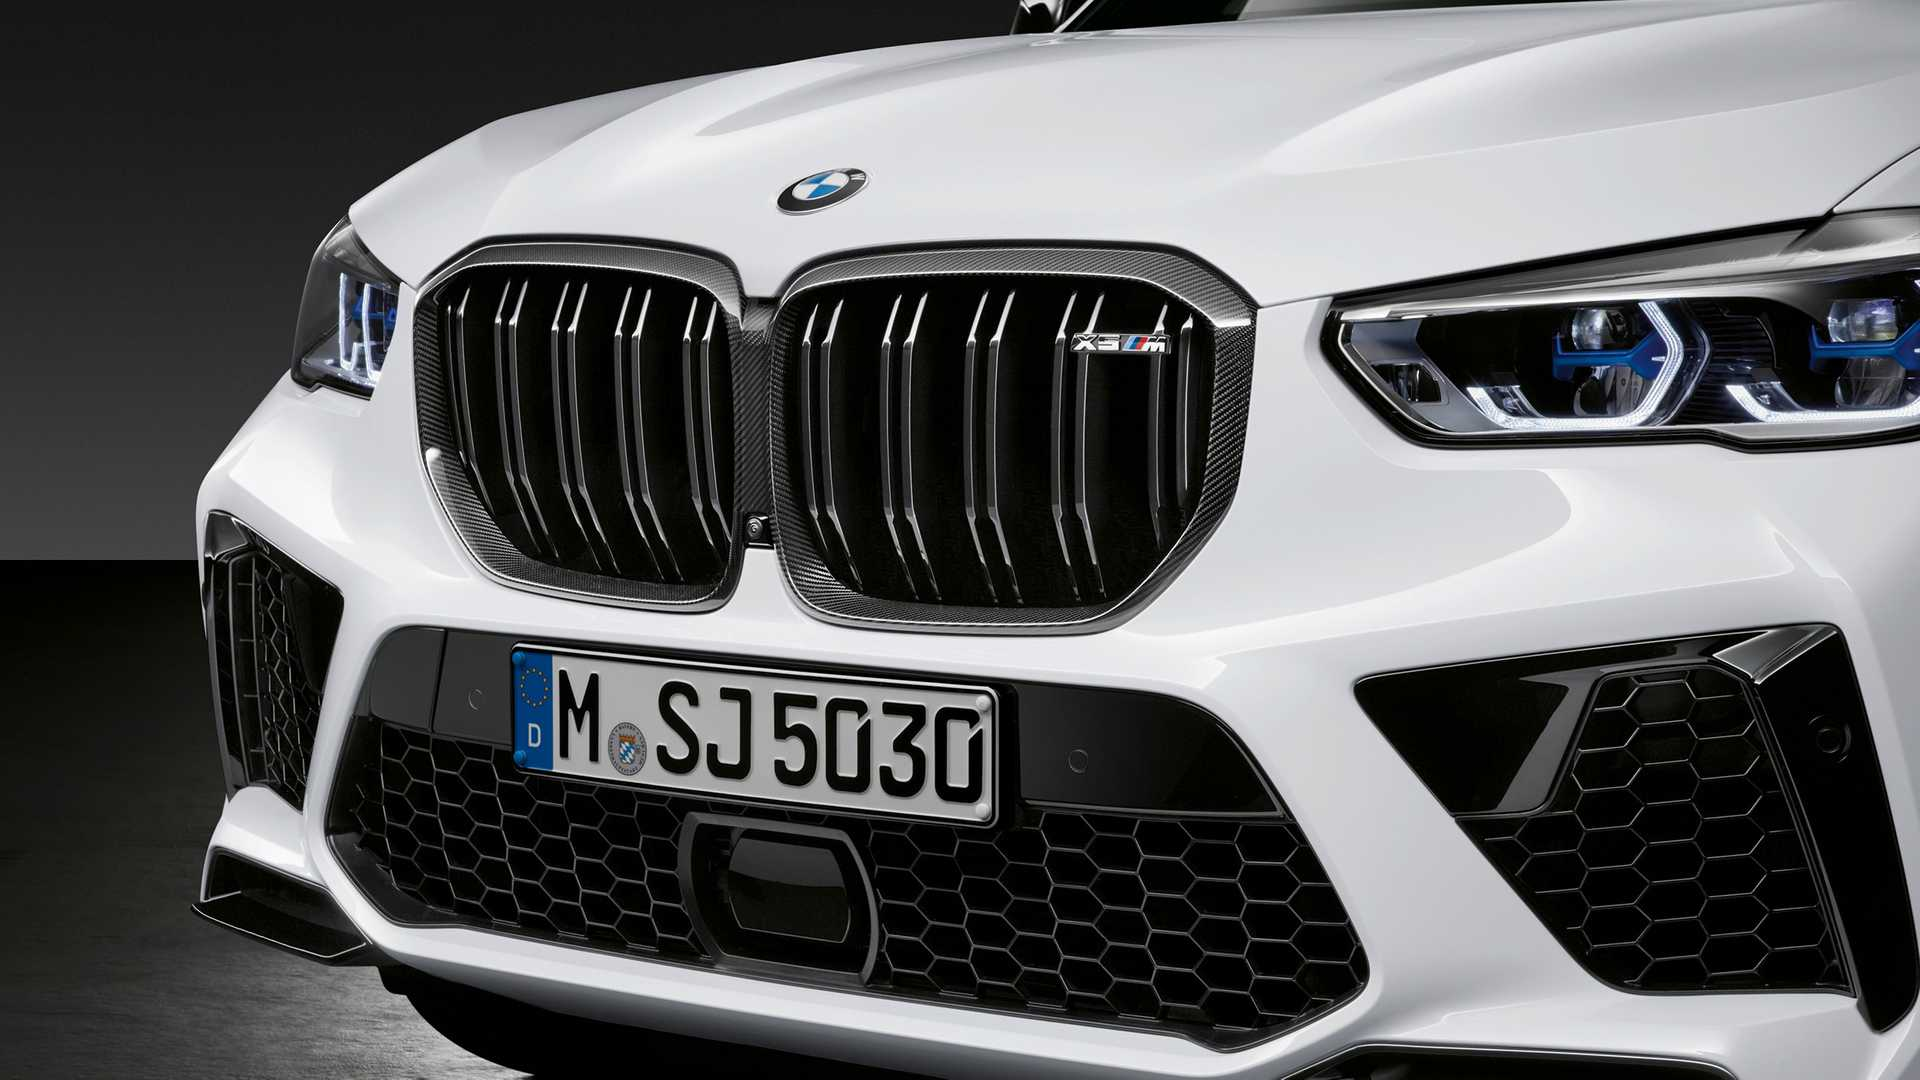 Bmw M Performance Parts Make X5 M X6 X6 M And X7 Look Sportier